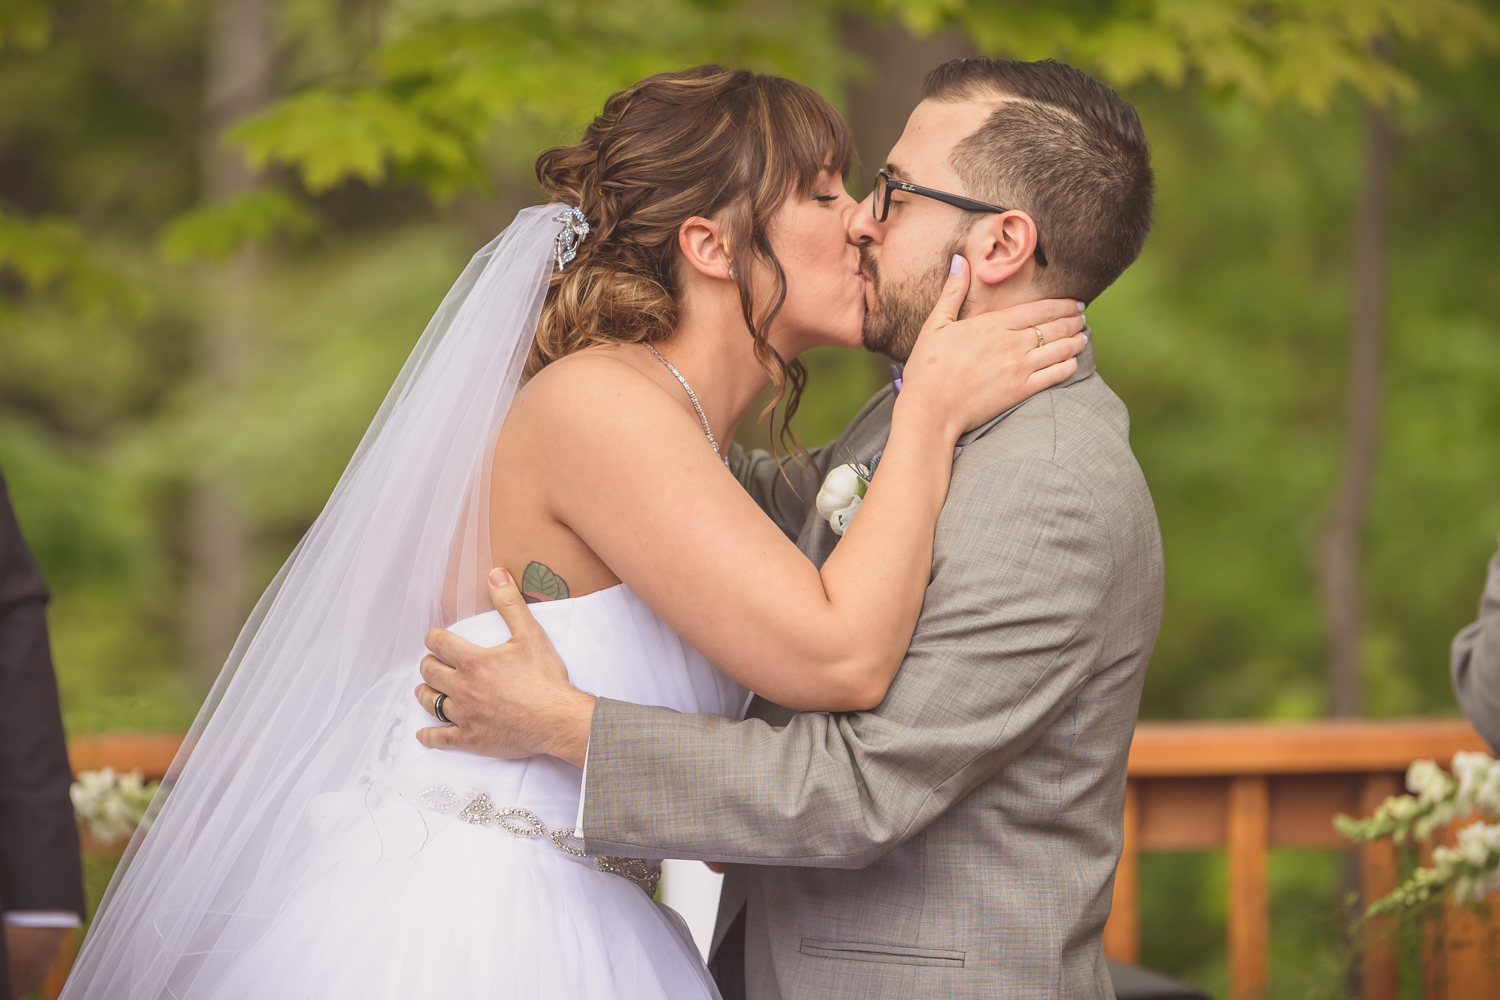 The bride and groom kiss right after saying their vows during the wedding ceremony in Mississauga, Ontario.